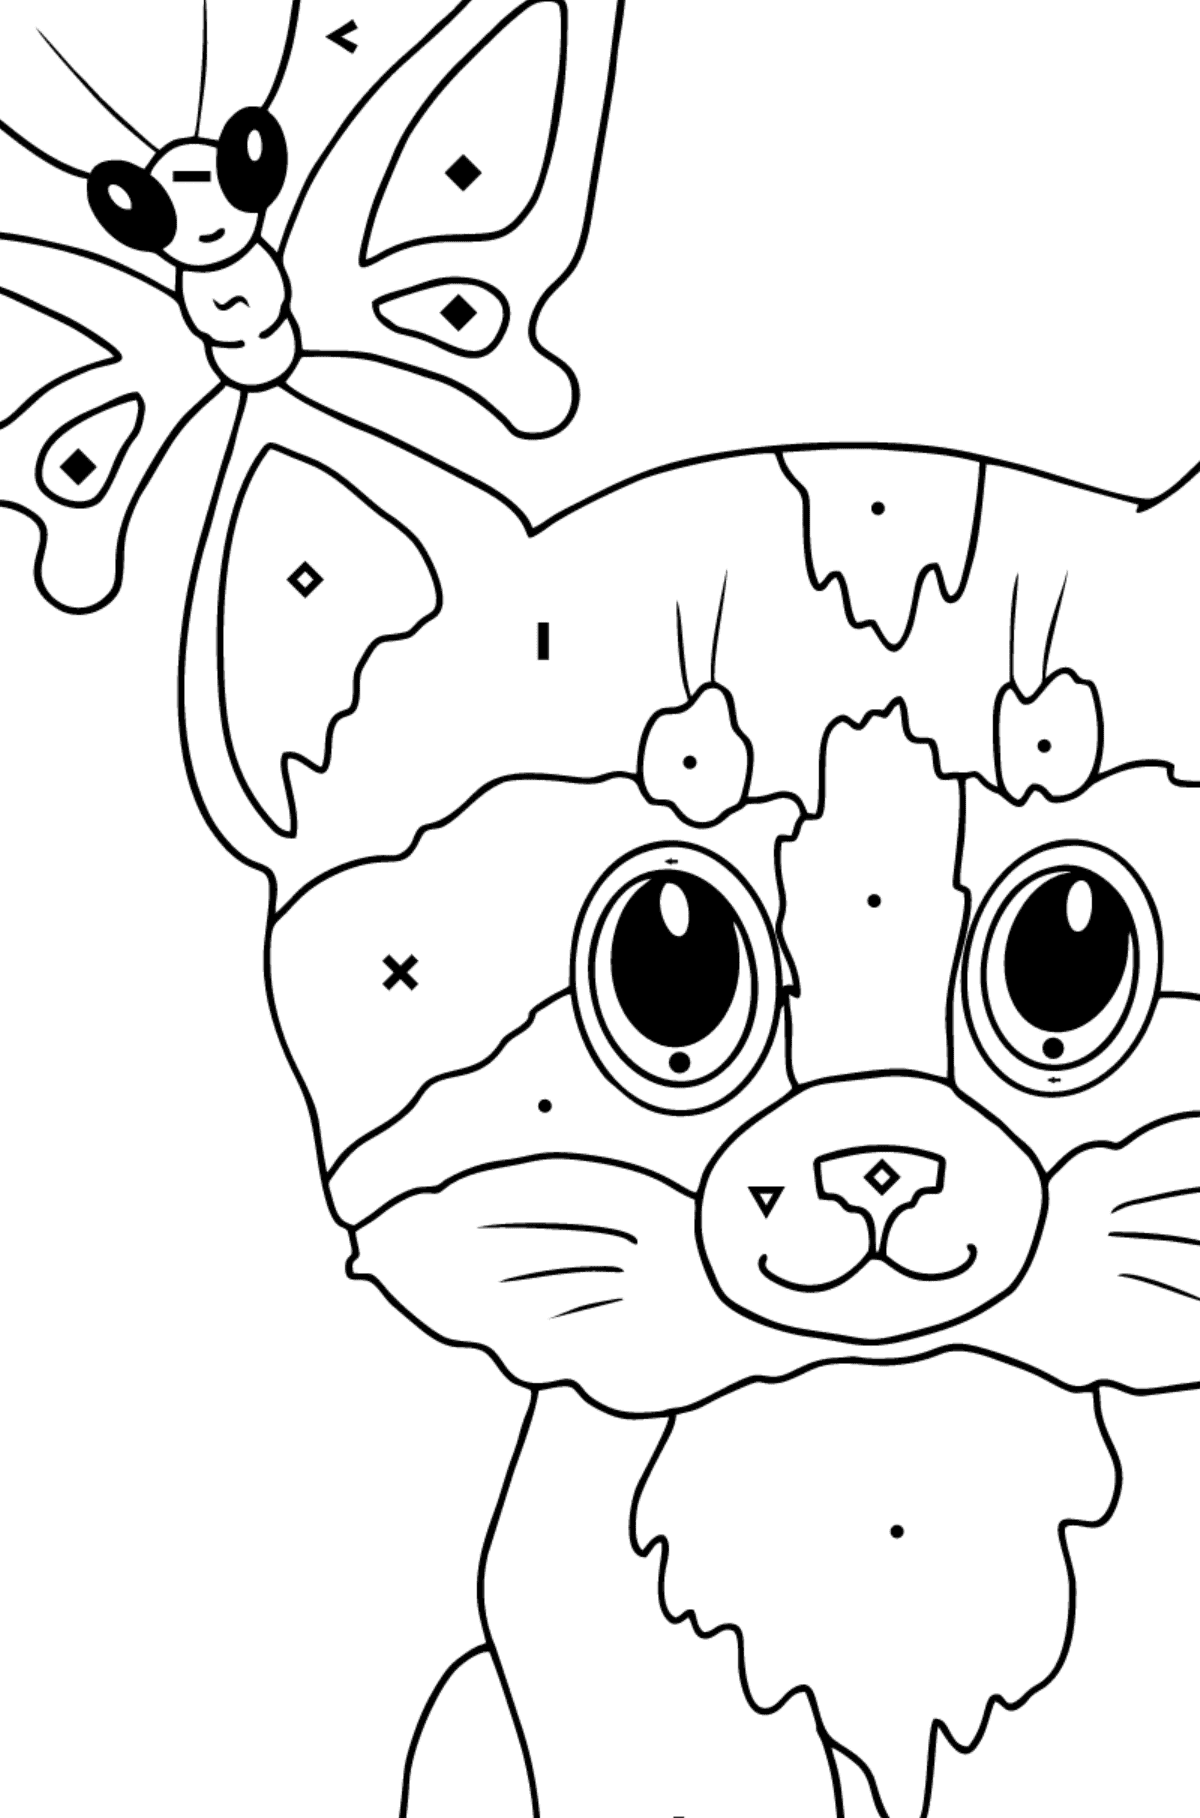 Coloring Page - A Cat with a Butterfly on Its Ear - Coloring by Symbols for Children